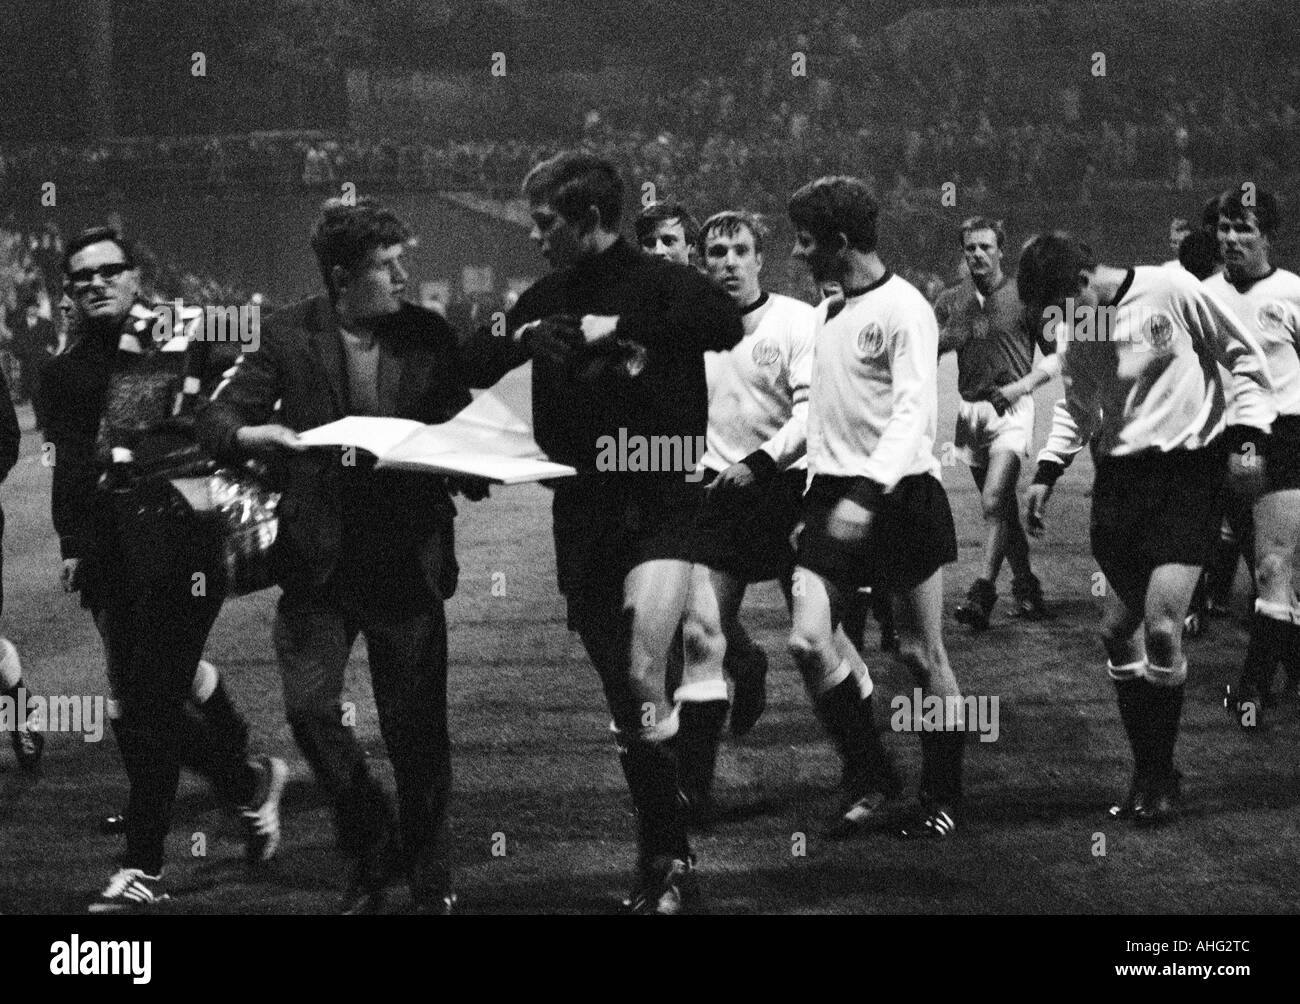 football players, a young football fan asks keeper Volker Danner (middle) for an autograph, the remaining German players f.l.t.r. Guenter Netzer, Herbert Wimmer, a player with lowered head, Jupp Heynckes - Stock Image